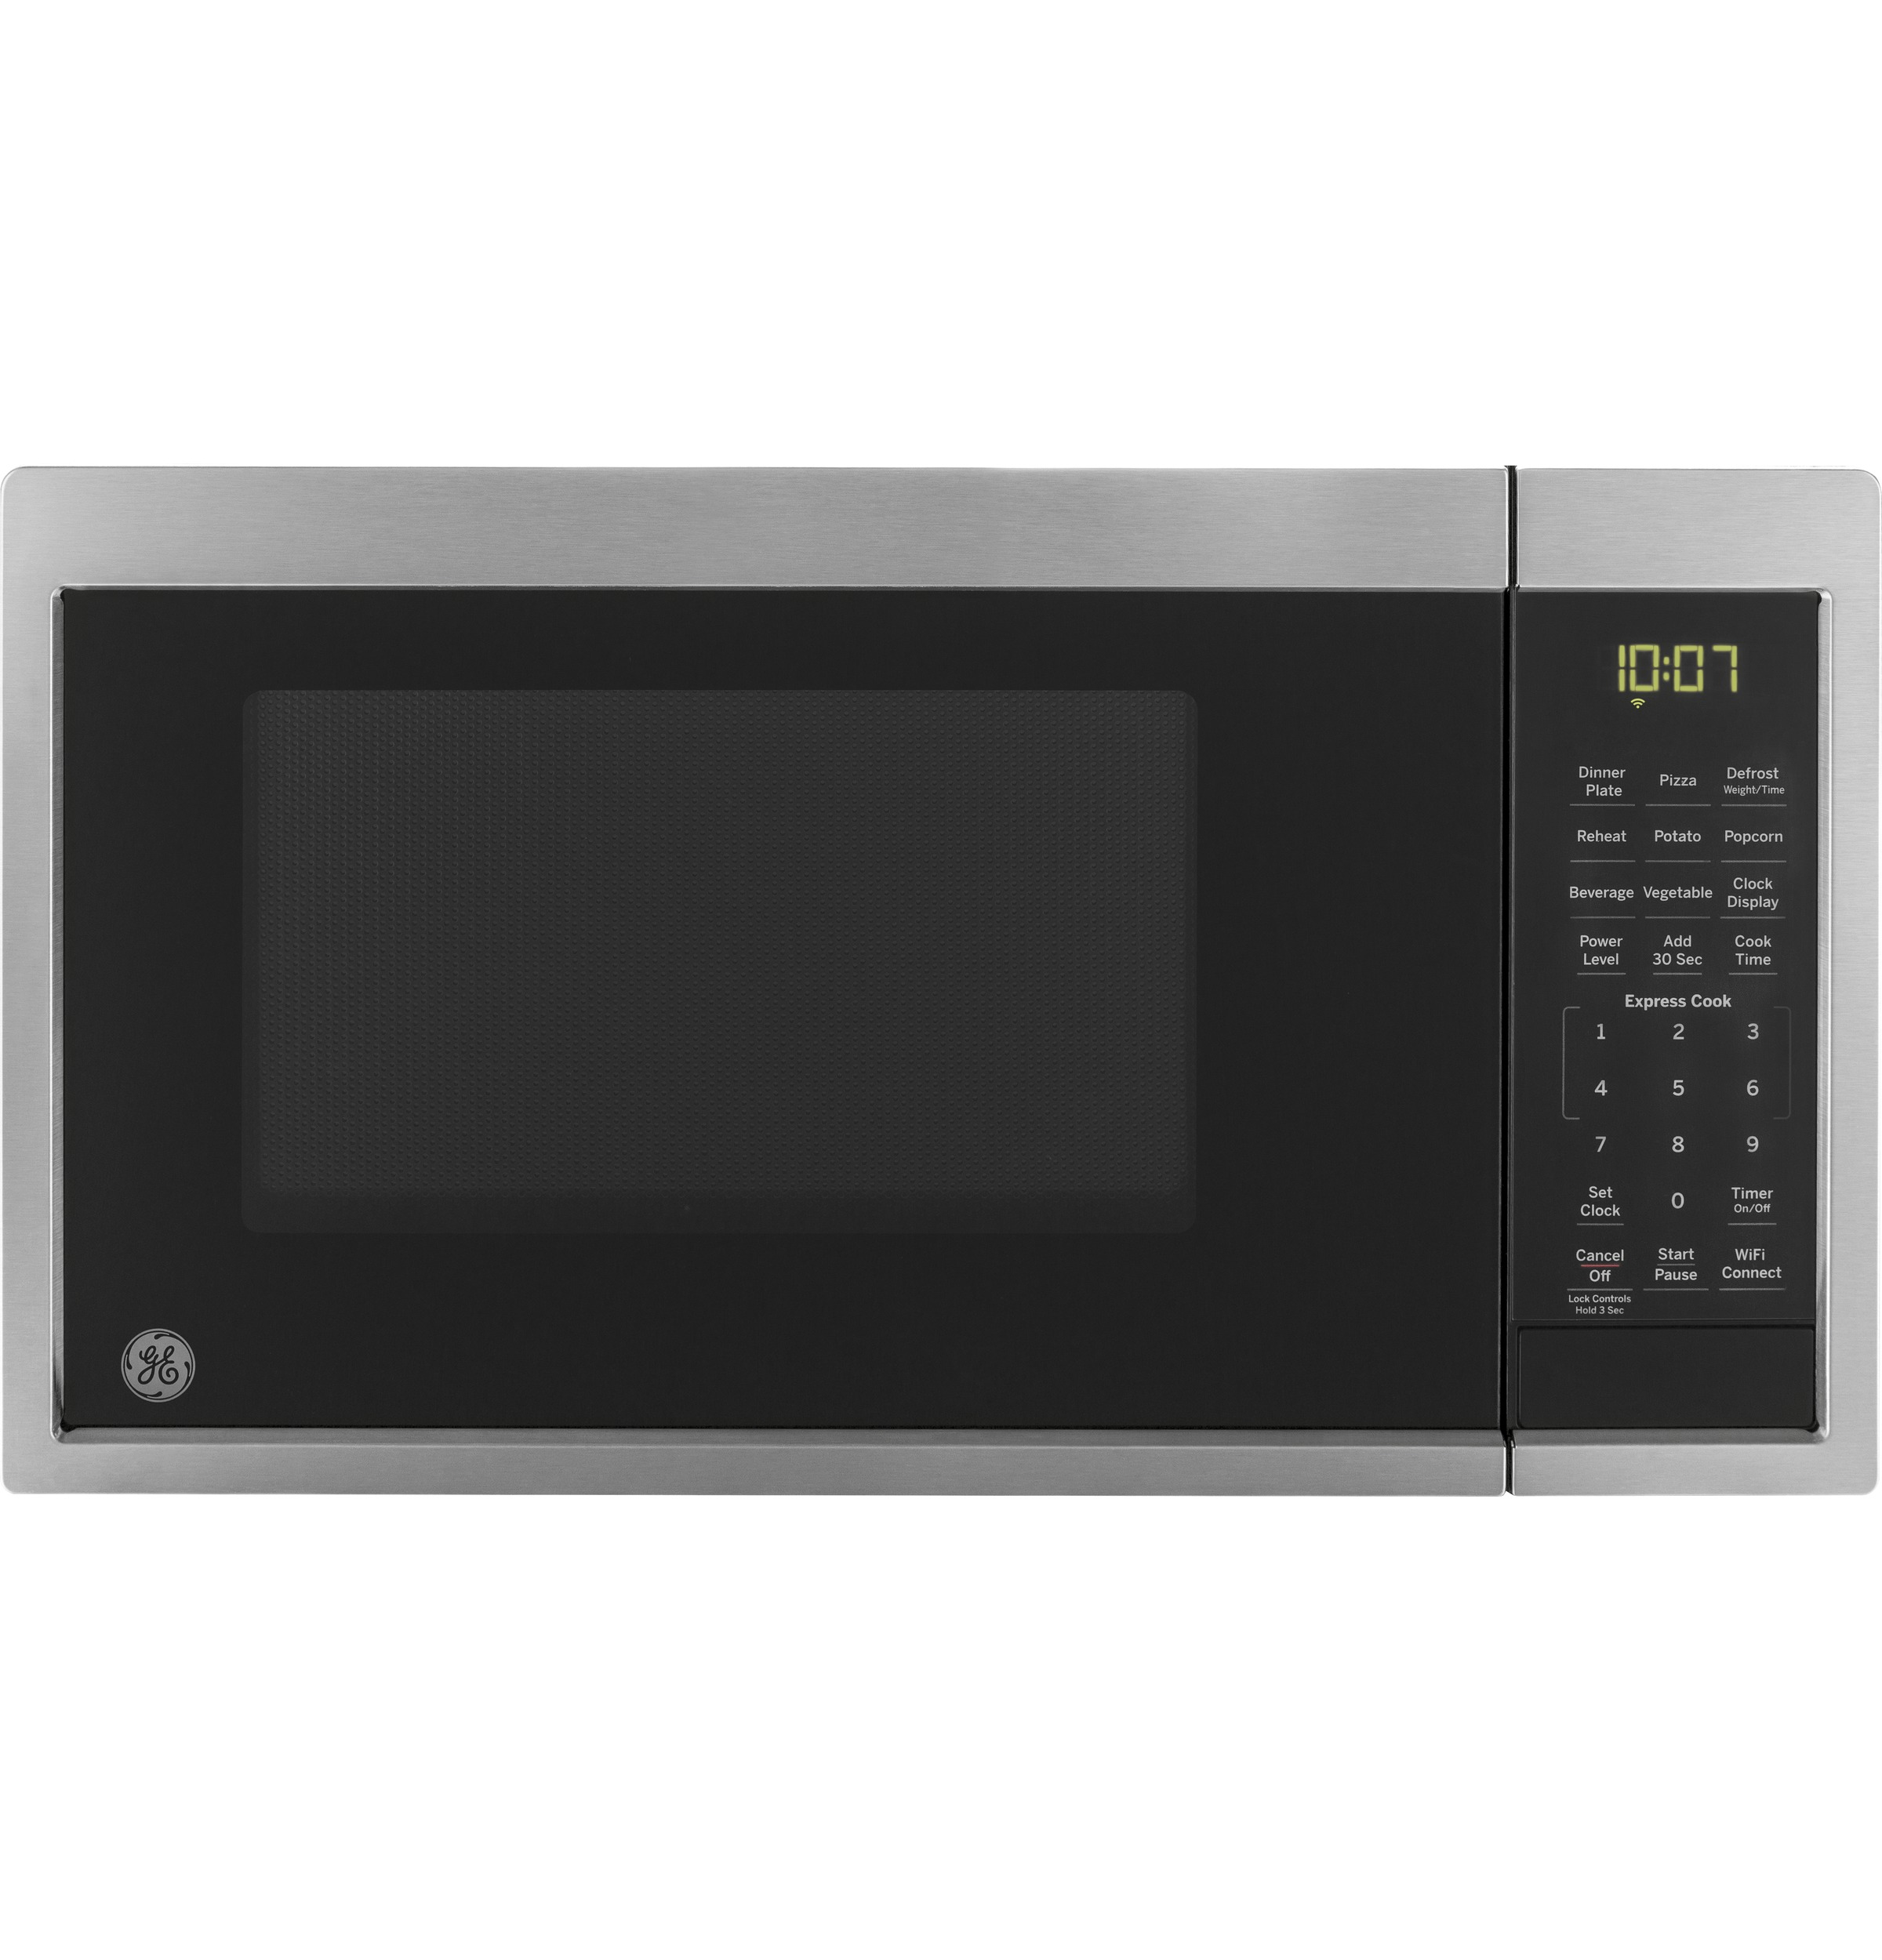 GE GE® 0.9 Cu. Ft. Capacity Smart Countertop Microwave Oven with Scan-To-Cook Technology